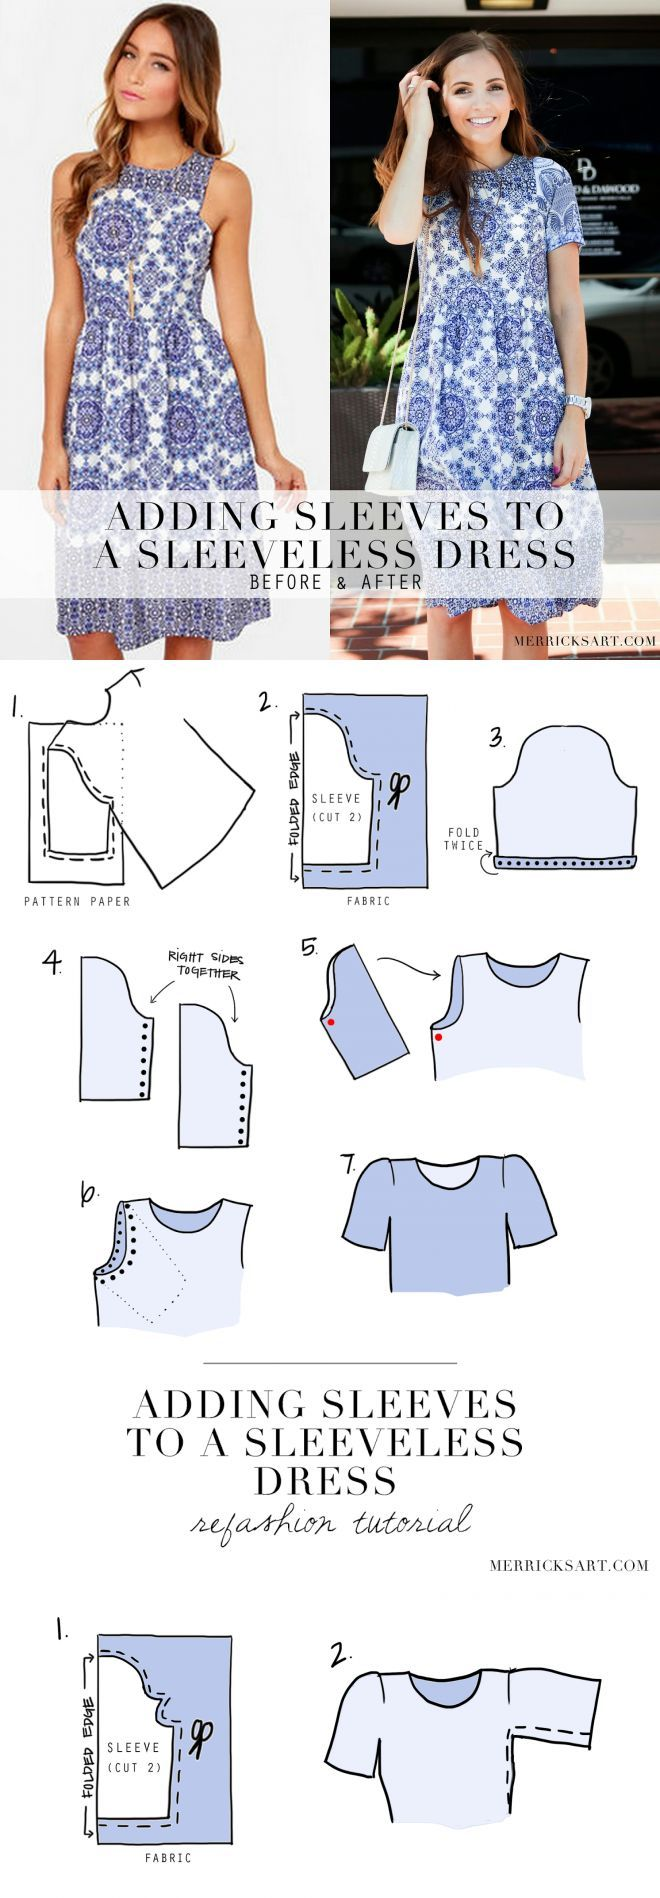 Merrick's Art // Style Sewing for the Everyday Girl: DIY FRIDAY: ADDING SLEEVES TO A SLEEVELESS DRESS (REFASHION TUTORIAL)